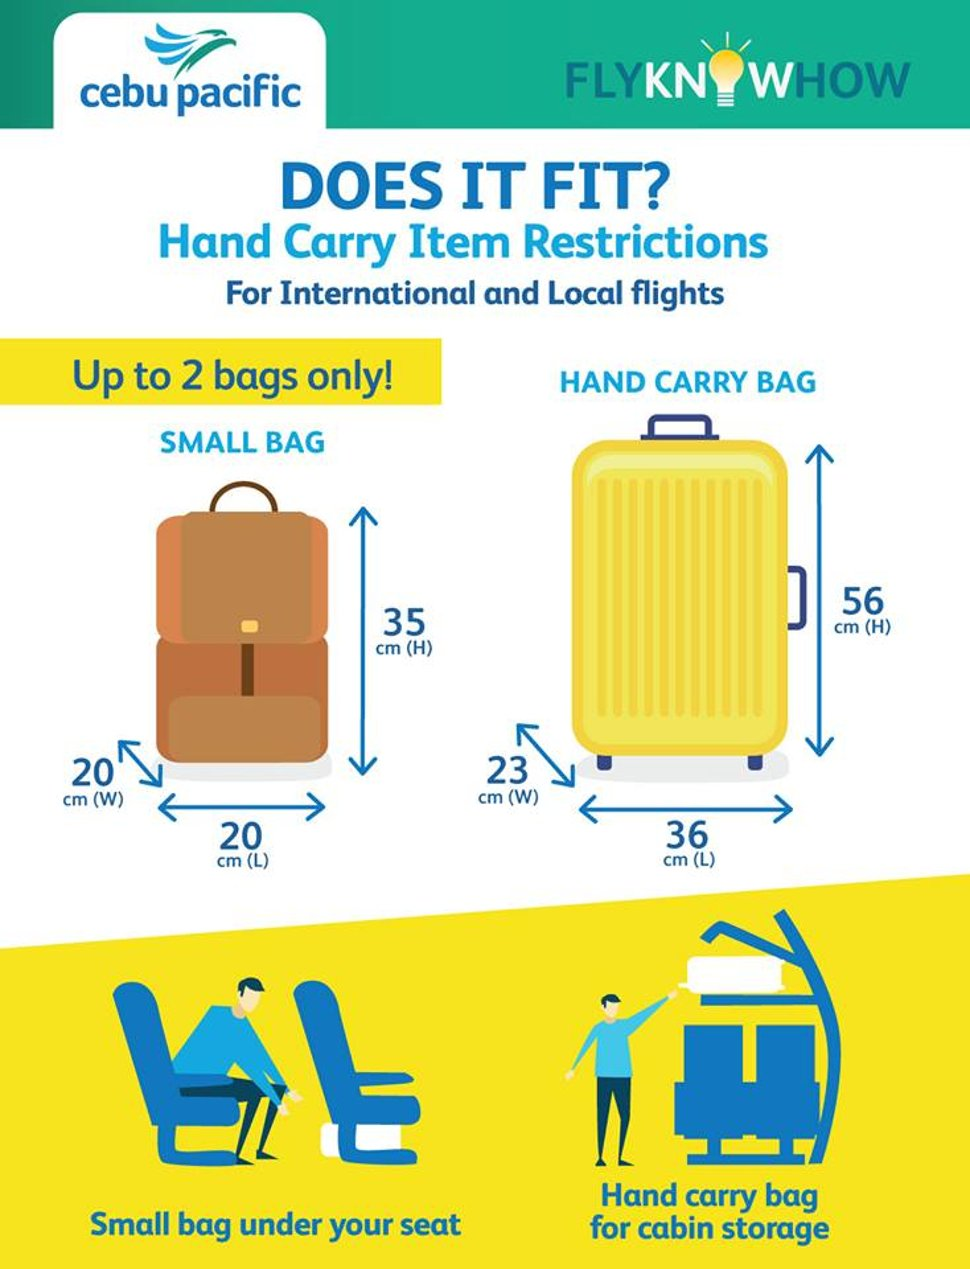 Hand carry item restrictions